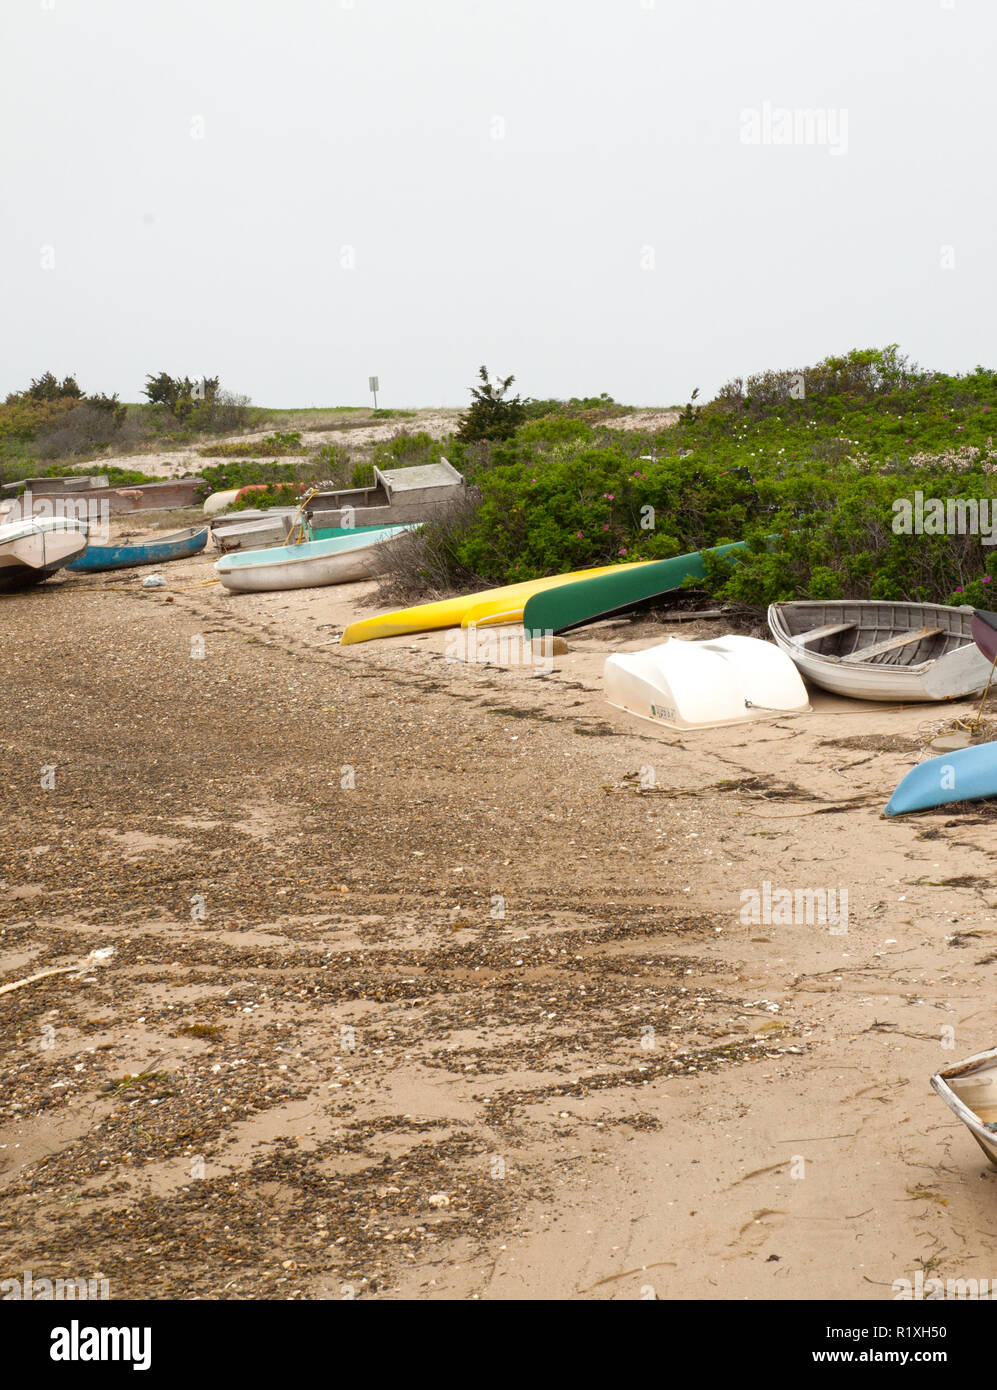 Low tide adds a resemblance of dirt along the coast line. - Stock Image